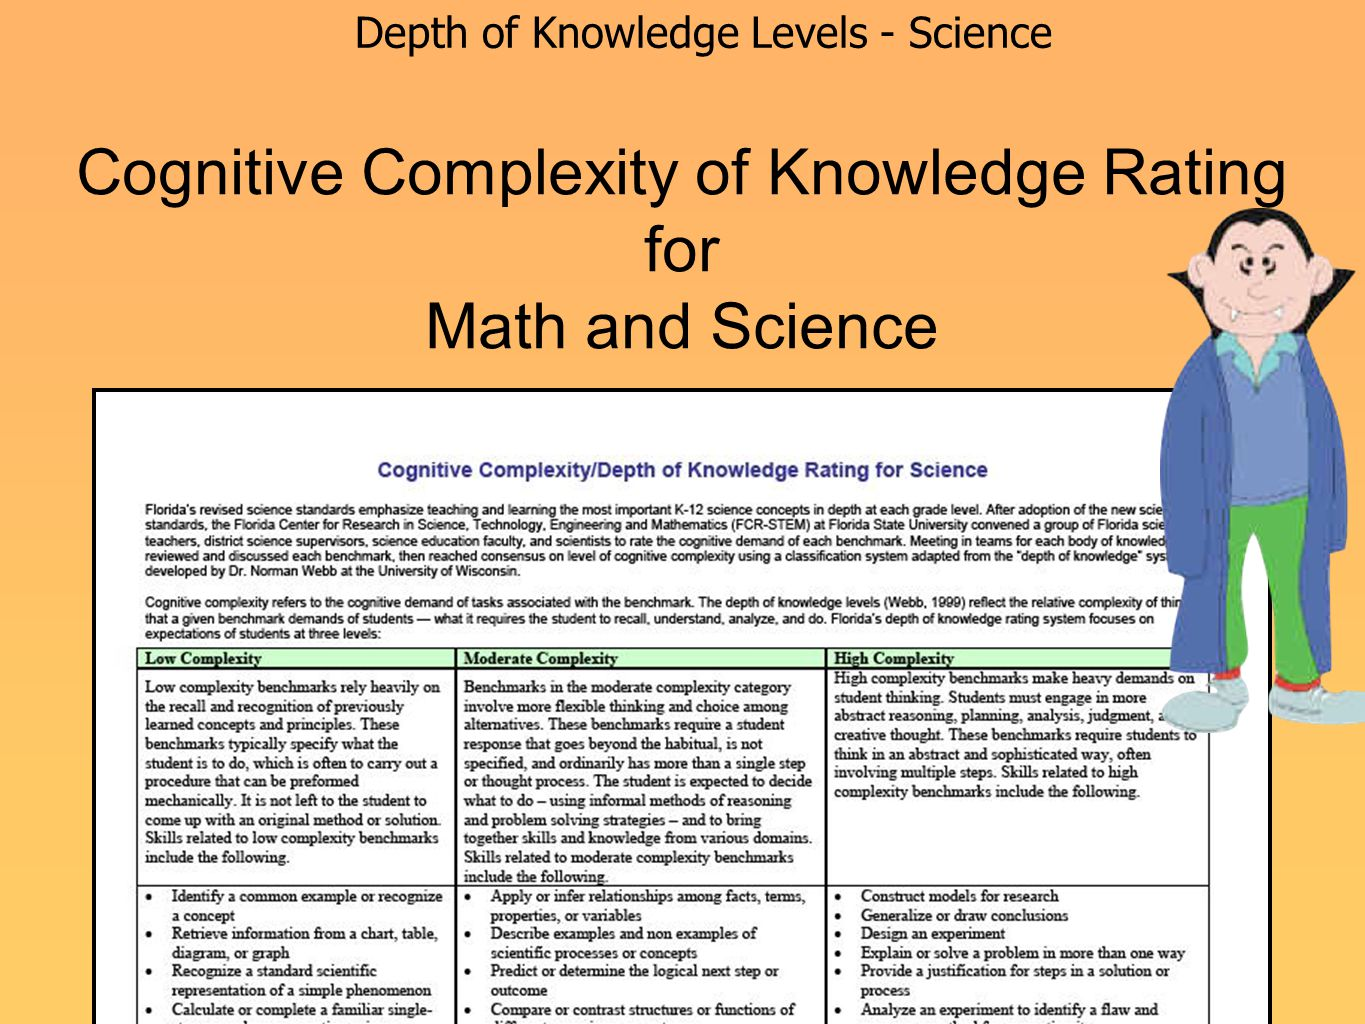 Cognitive Complexity of Knowledge Rating for Math and Science